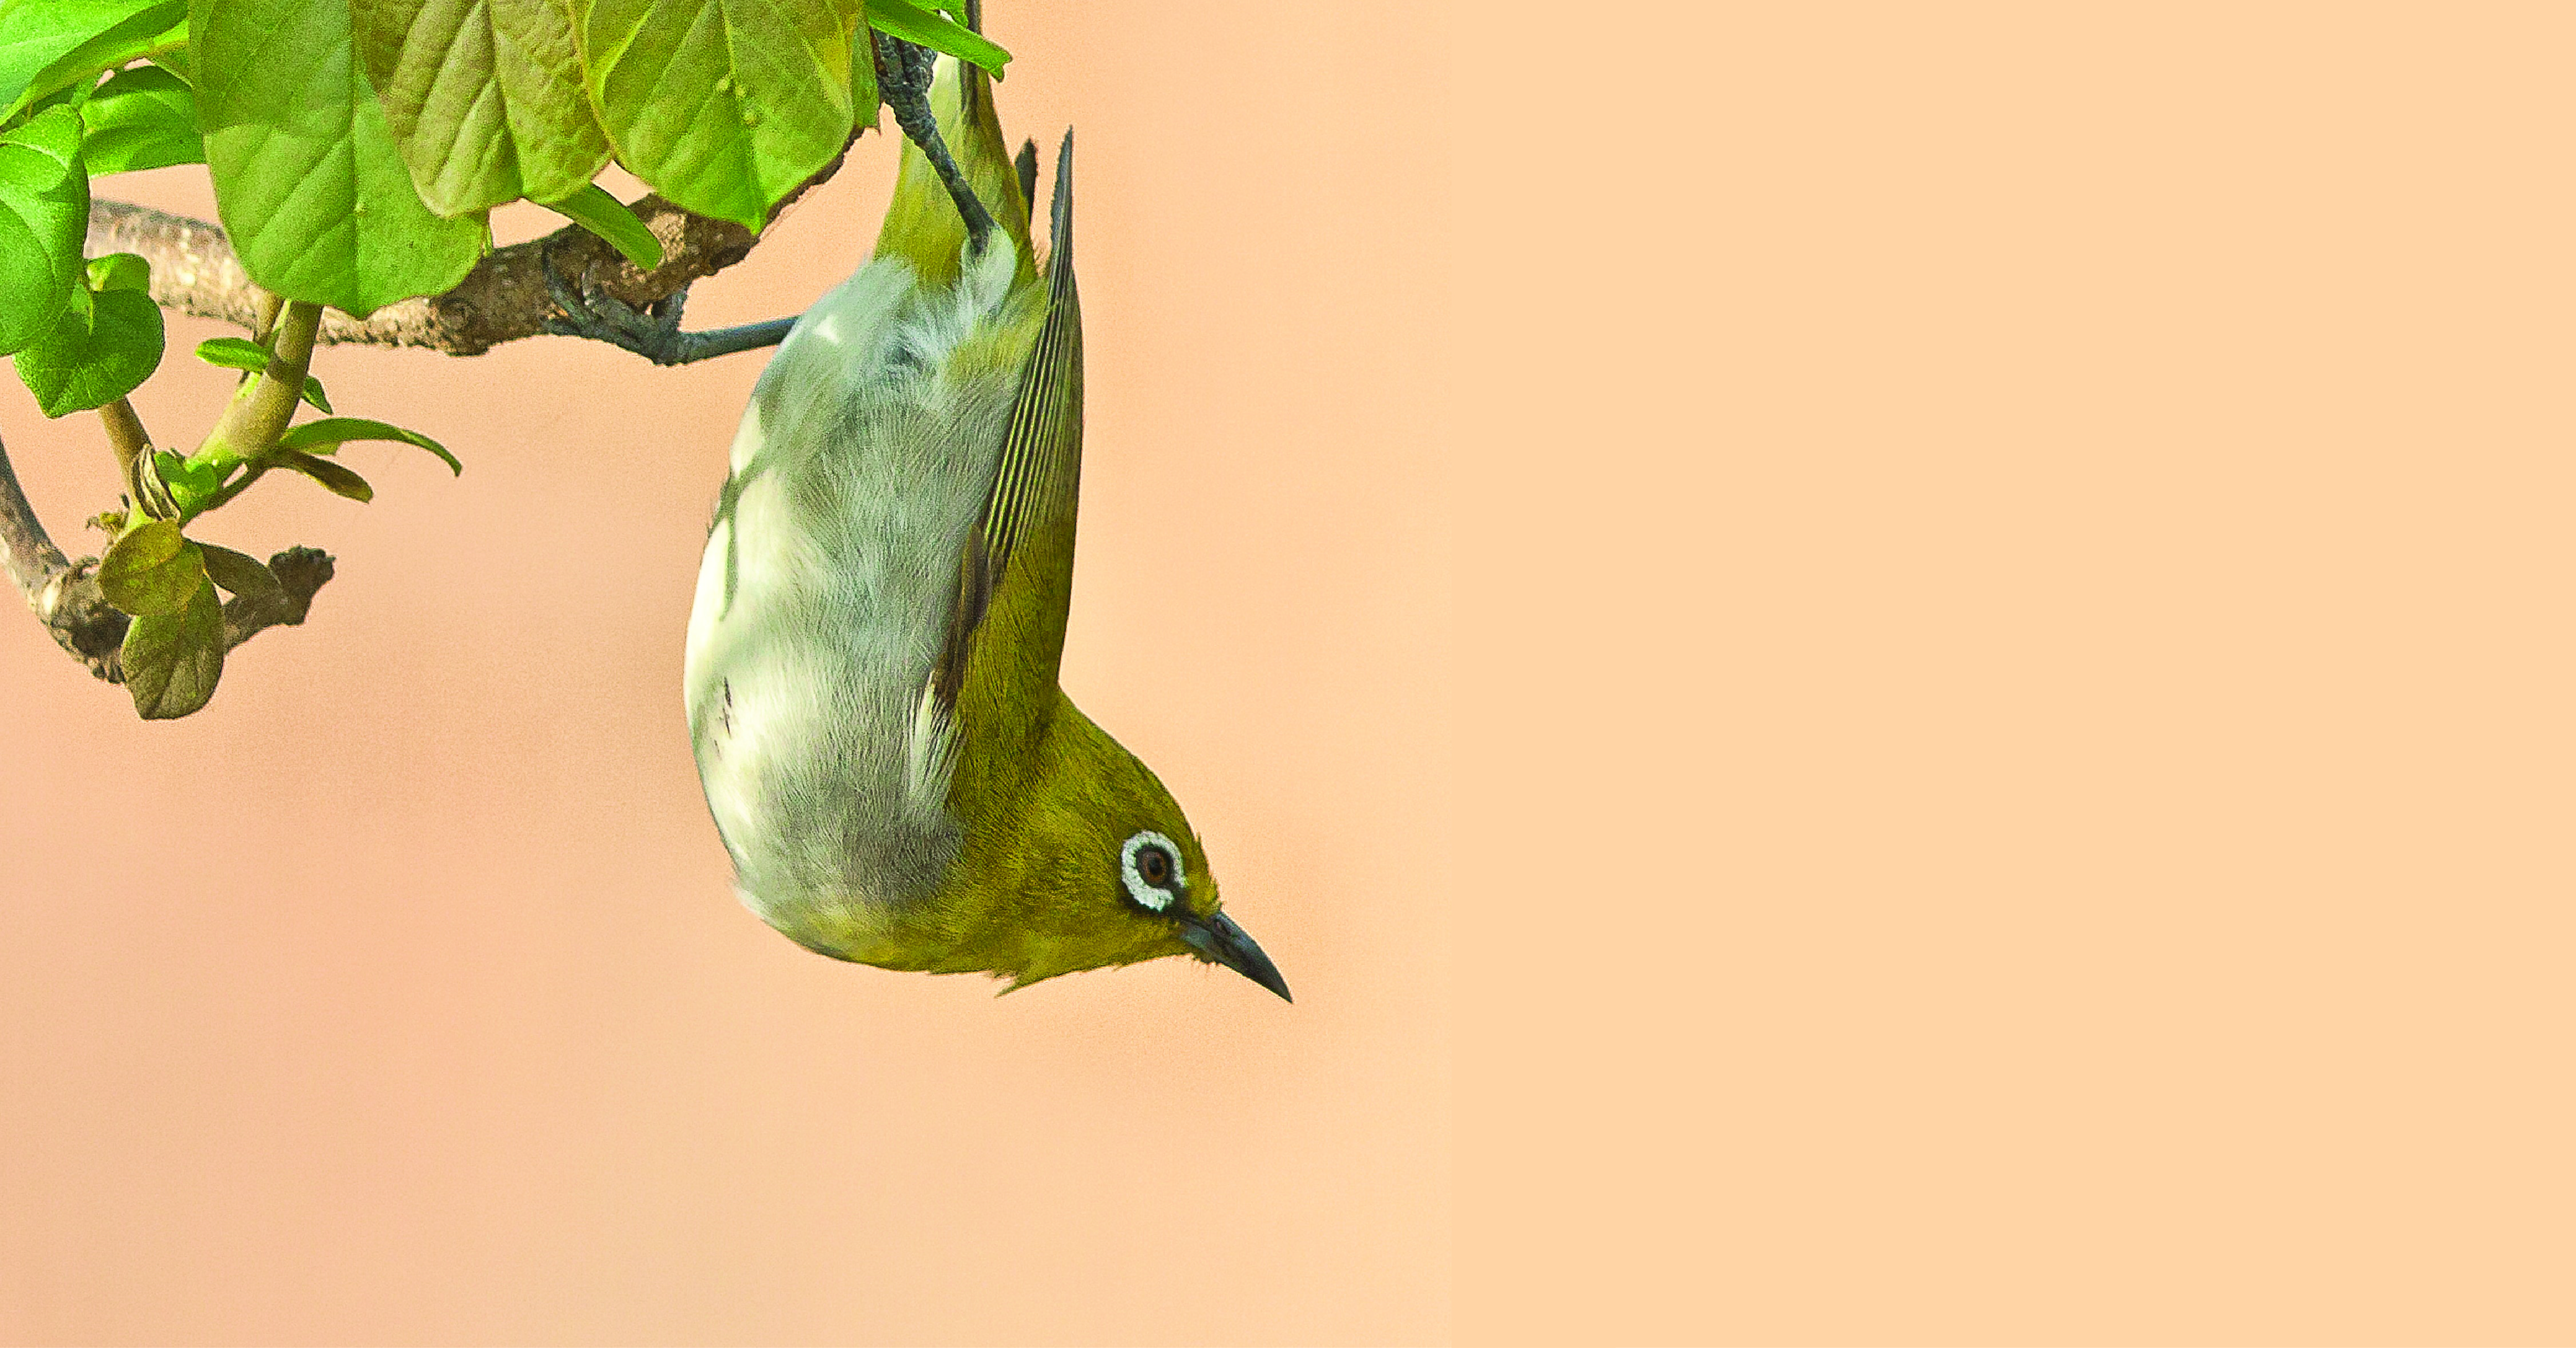 HomeDabbler | Songbird hanging from tree | 3 Easy Ways to Attract Songbirds to Your Yard